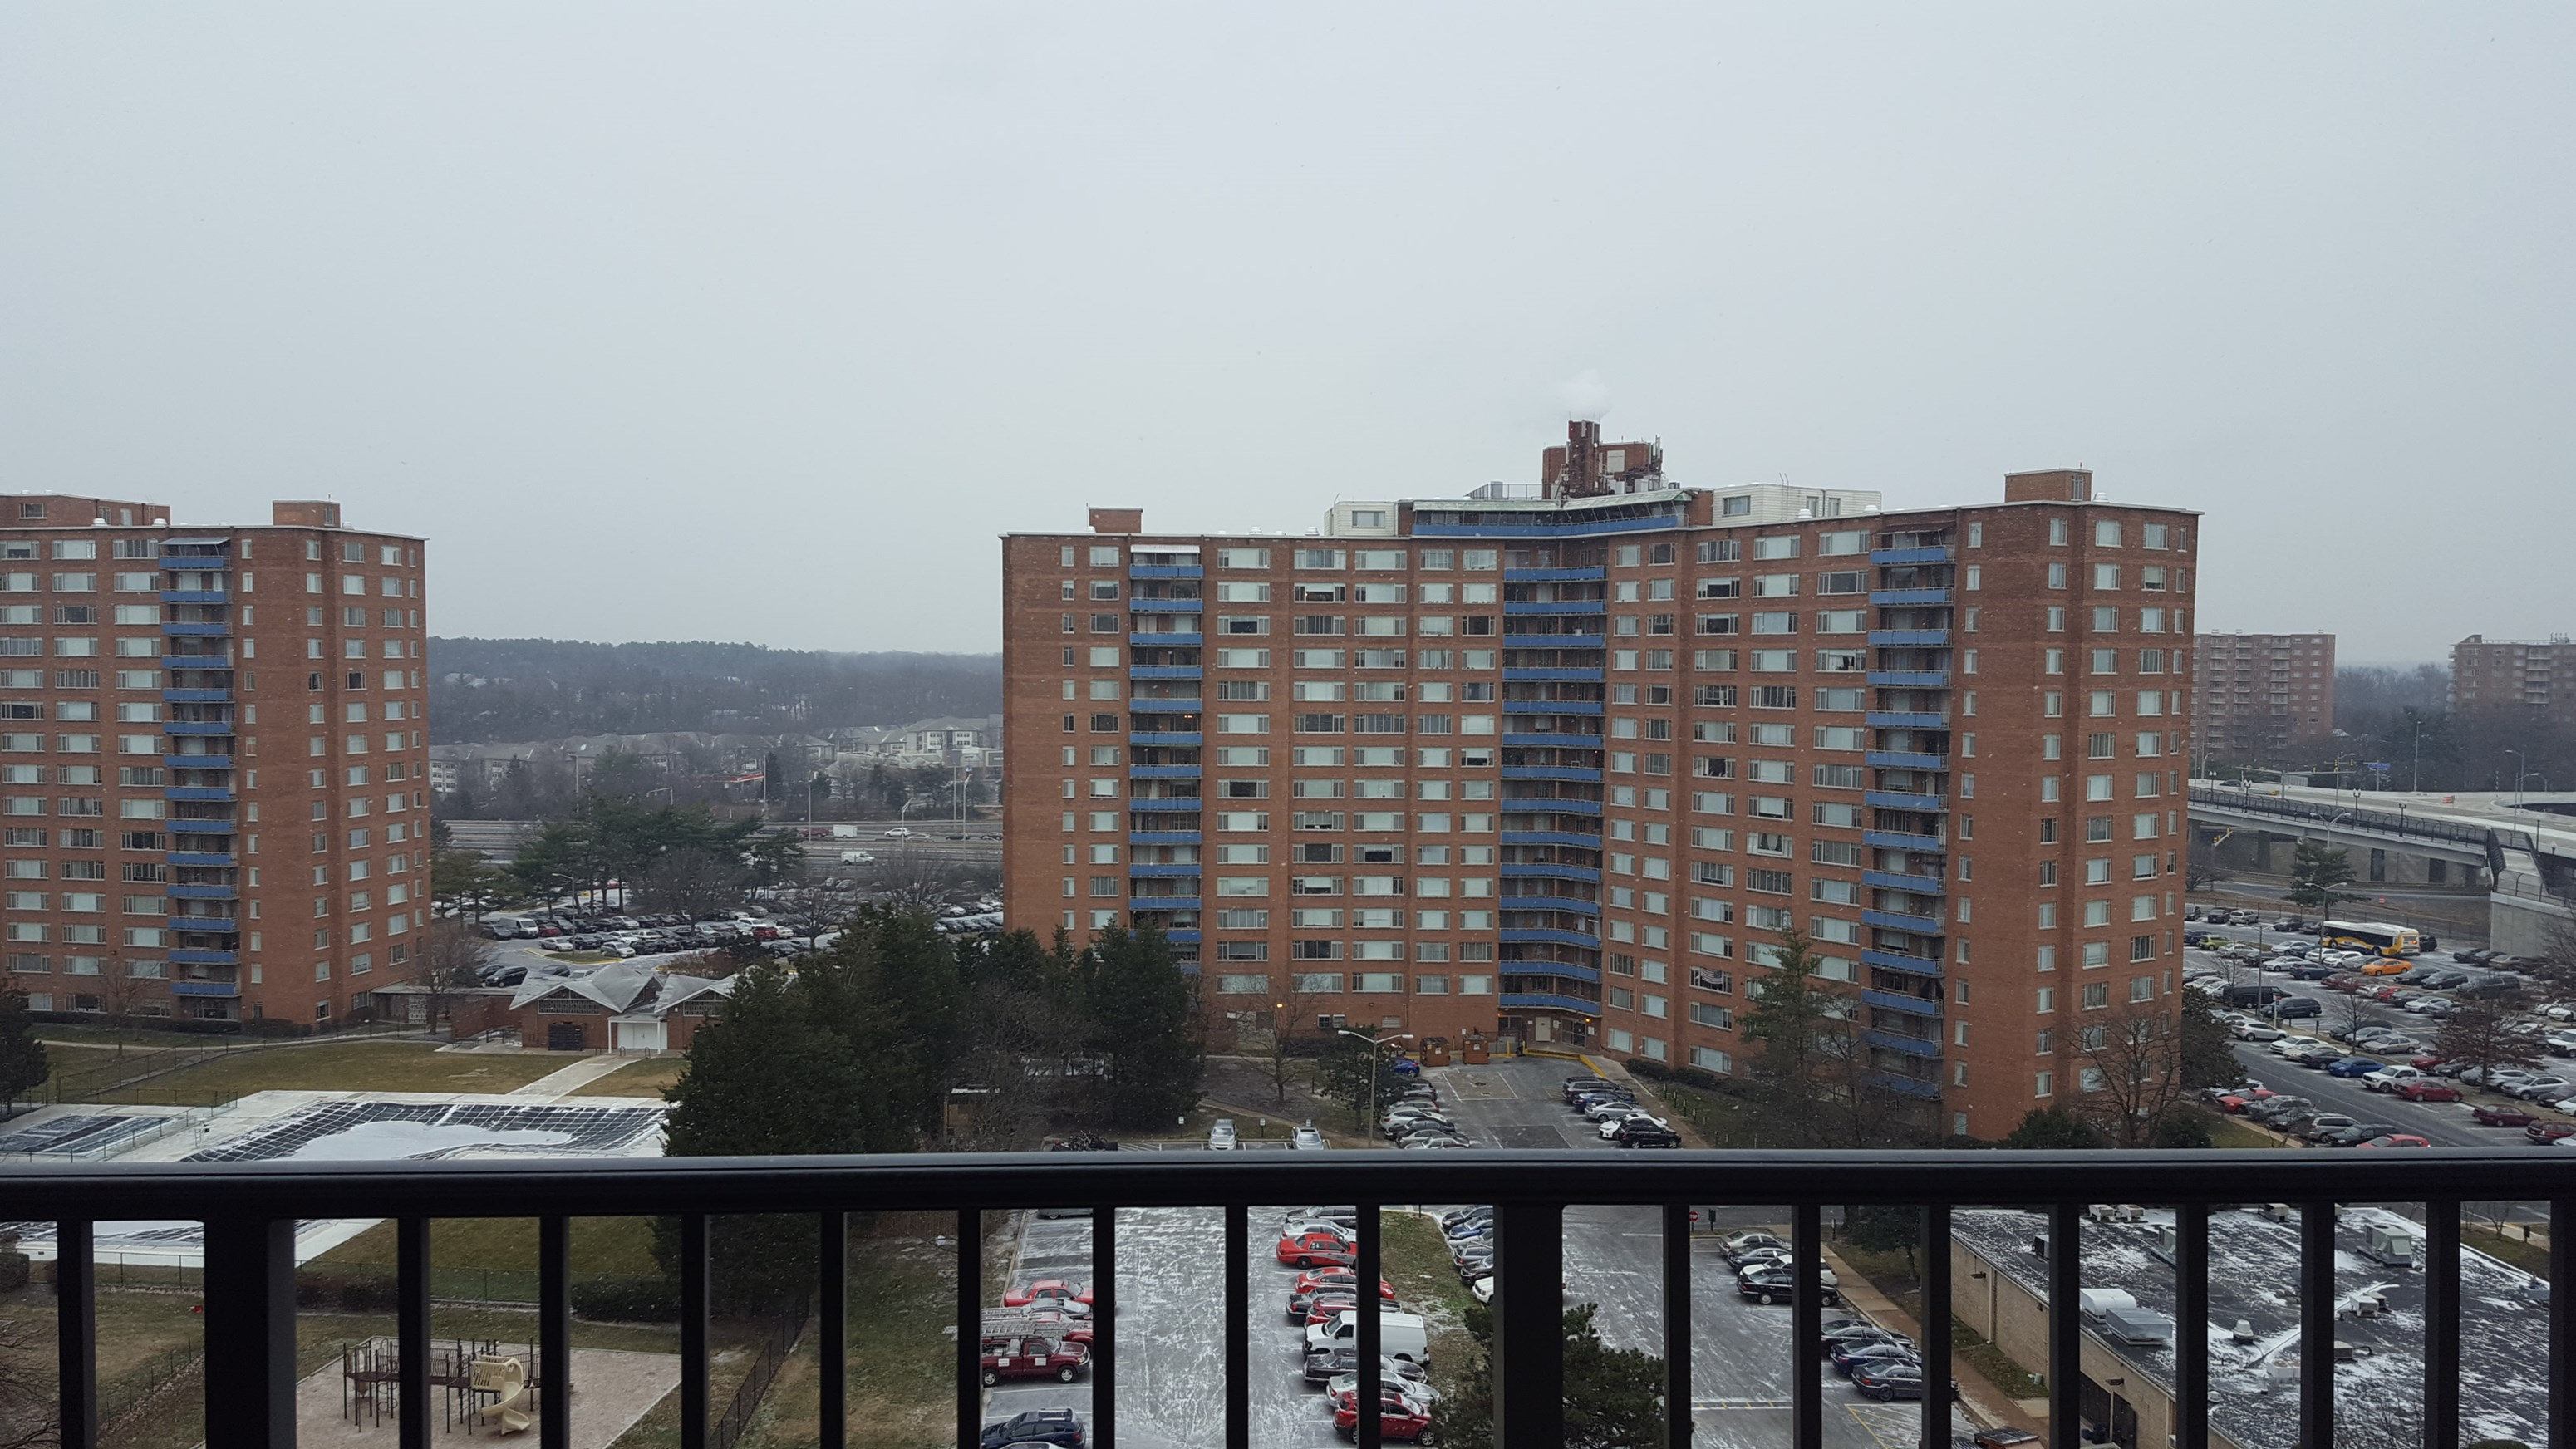 1 Bedroom Available For Rent 700 Mo In 3bed 2 Bath Apt Alexandria In Alexandria Va 854300